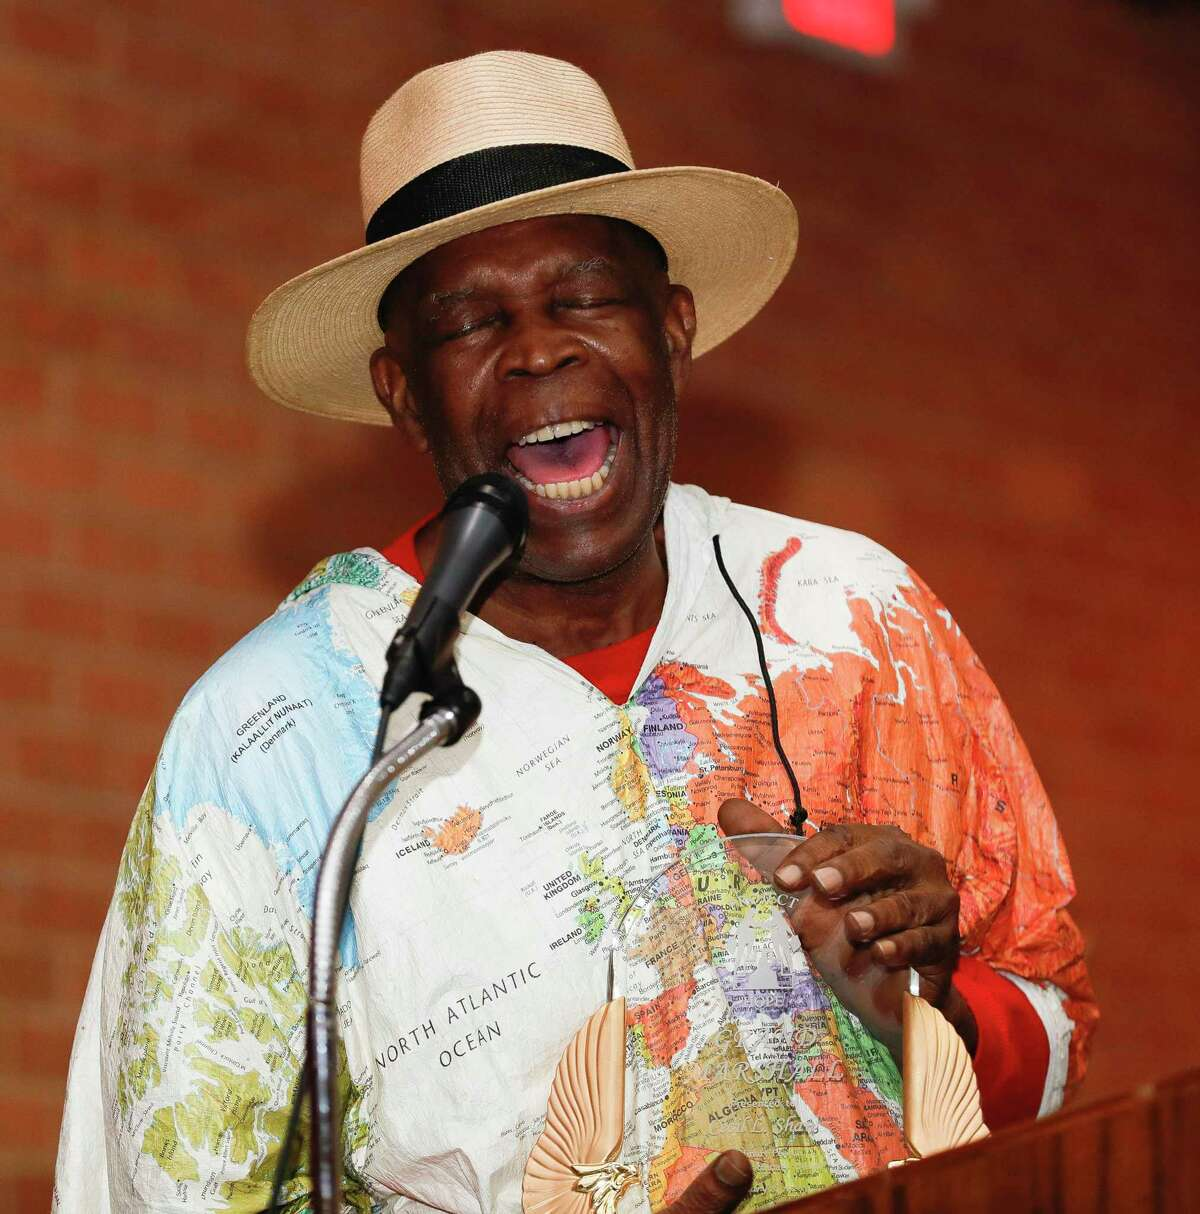 Cecil L. Shaw, Jr., who served as grand marshal of the annual Leon Tolbert Annual Black History Month Parade, sings at Booker T. Washington Junior High School, Saturday, Feb. 8, 2020, in Conroe.